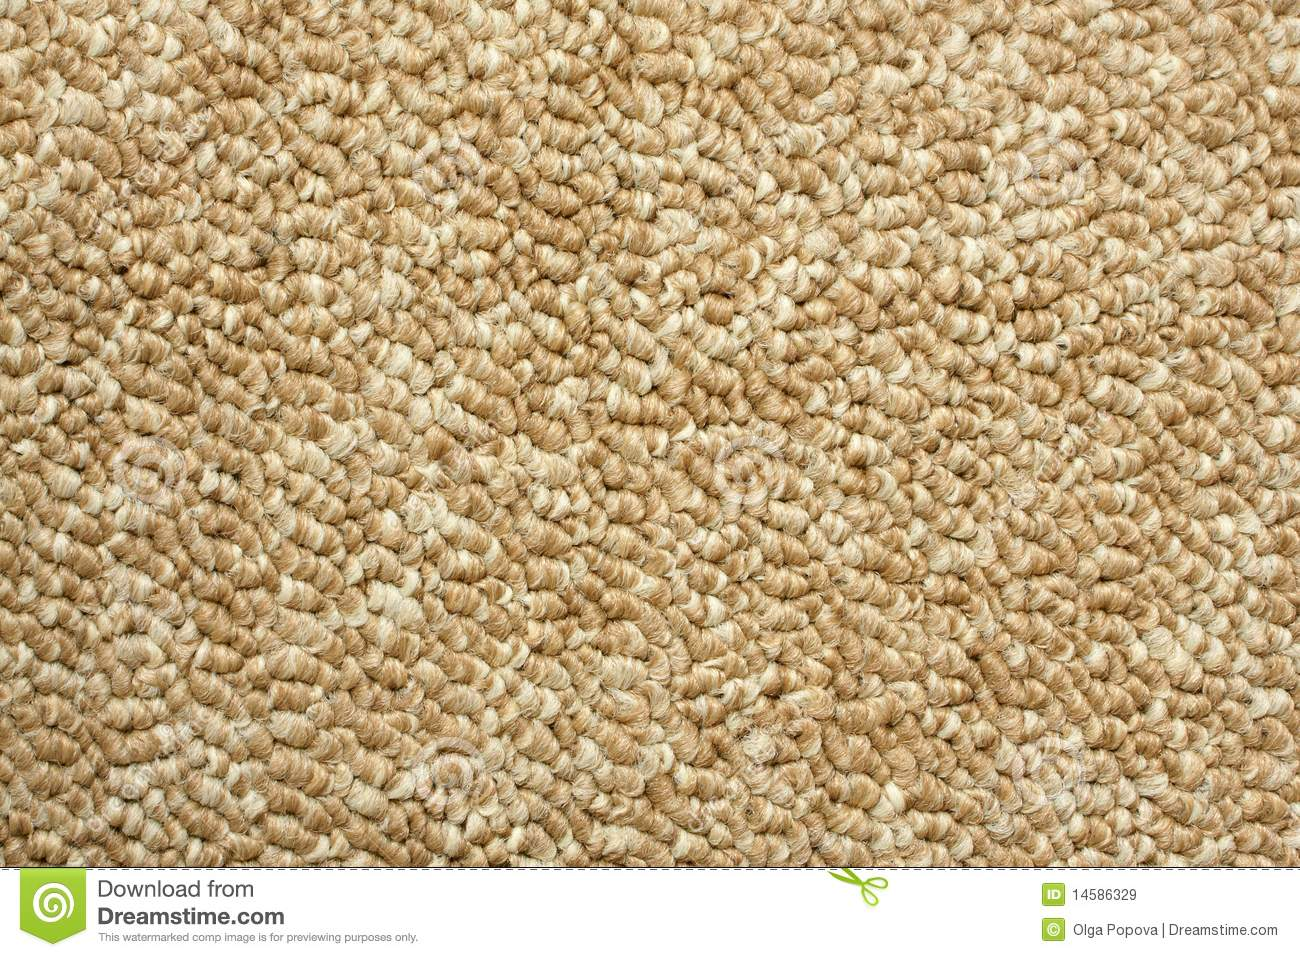 Living room 2017 wood design with wheat linen seat upholstery weinda - Beige Carpet Texture Royalty Free Stock Images Image 14586329